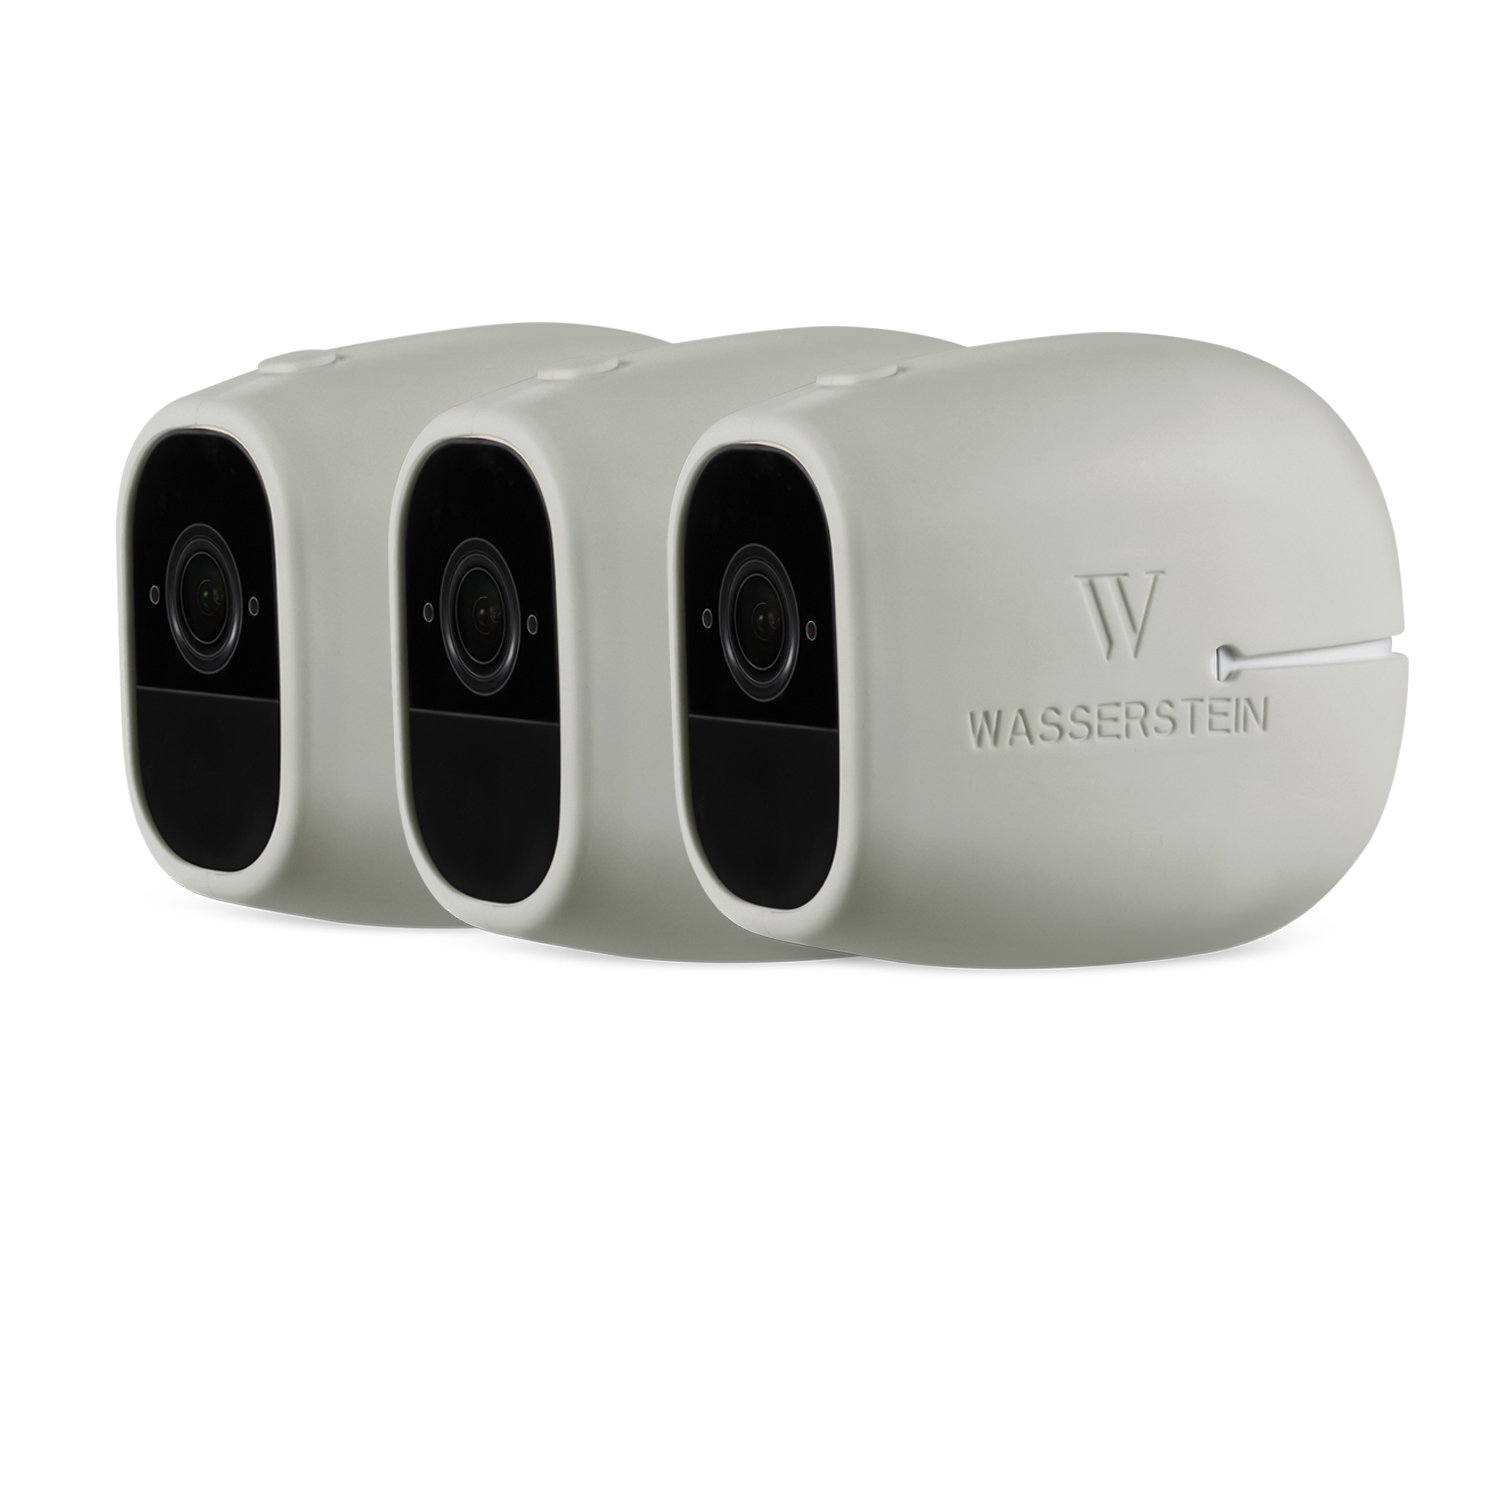 3 x Silicone Skins Compatible With Arlo Pro & Arlo Pro 2 Smart Security - 100% Wire-Free Cameras - by Wasserstein (3 Pack, Wheat)